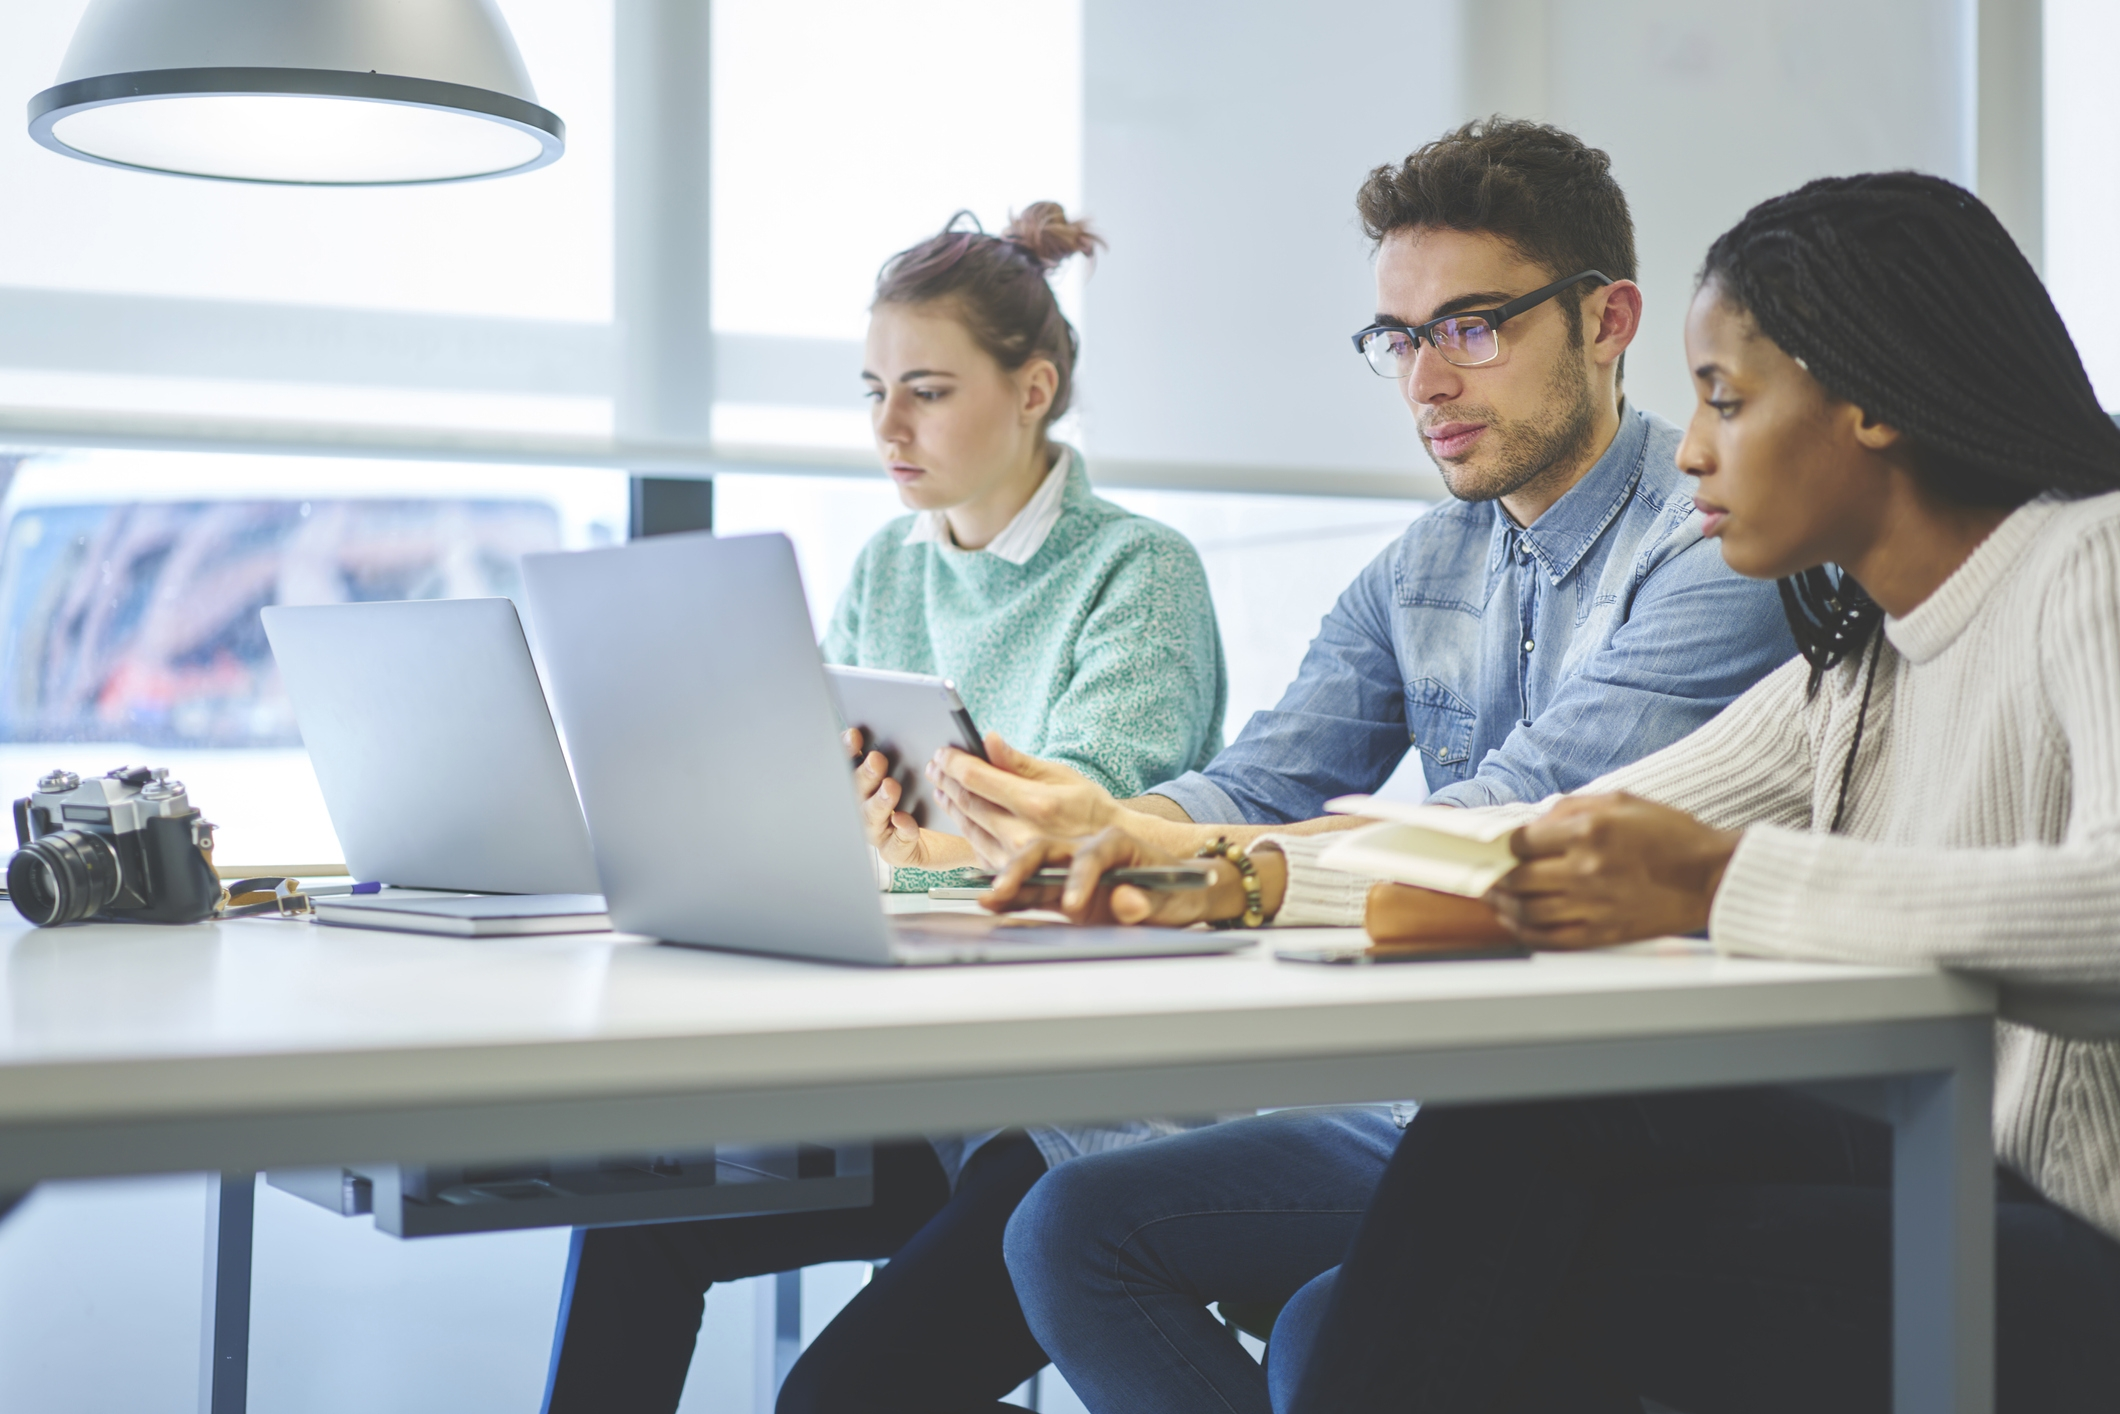 Employee Engagement for Millennials as a Competitive Edge